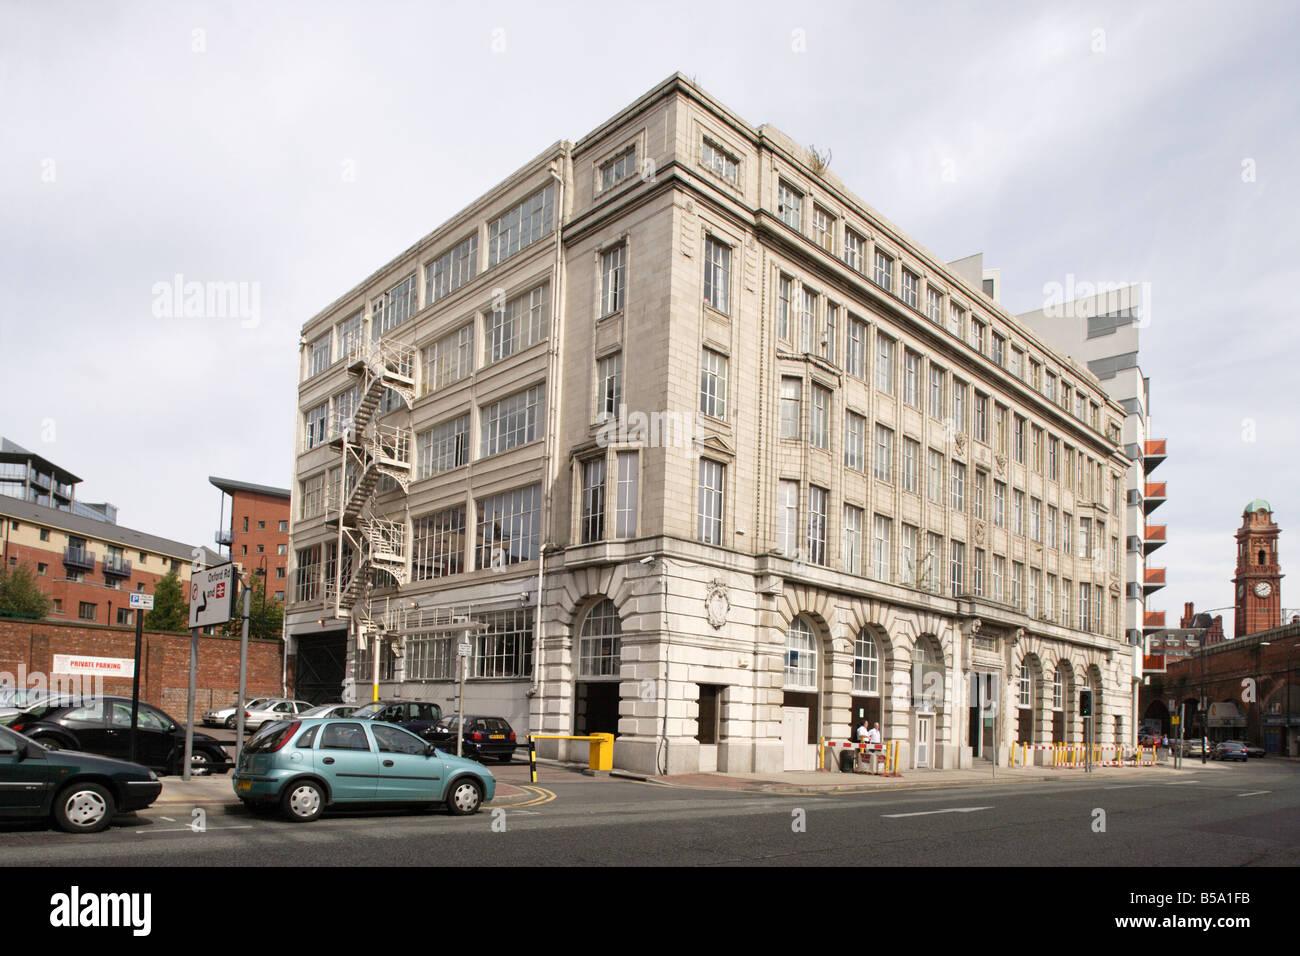 Barclay House In Manchester Uk Stock Photo Royalty Free